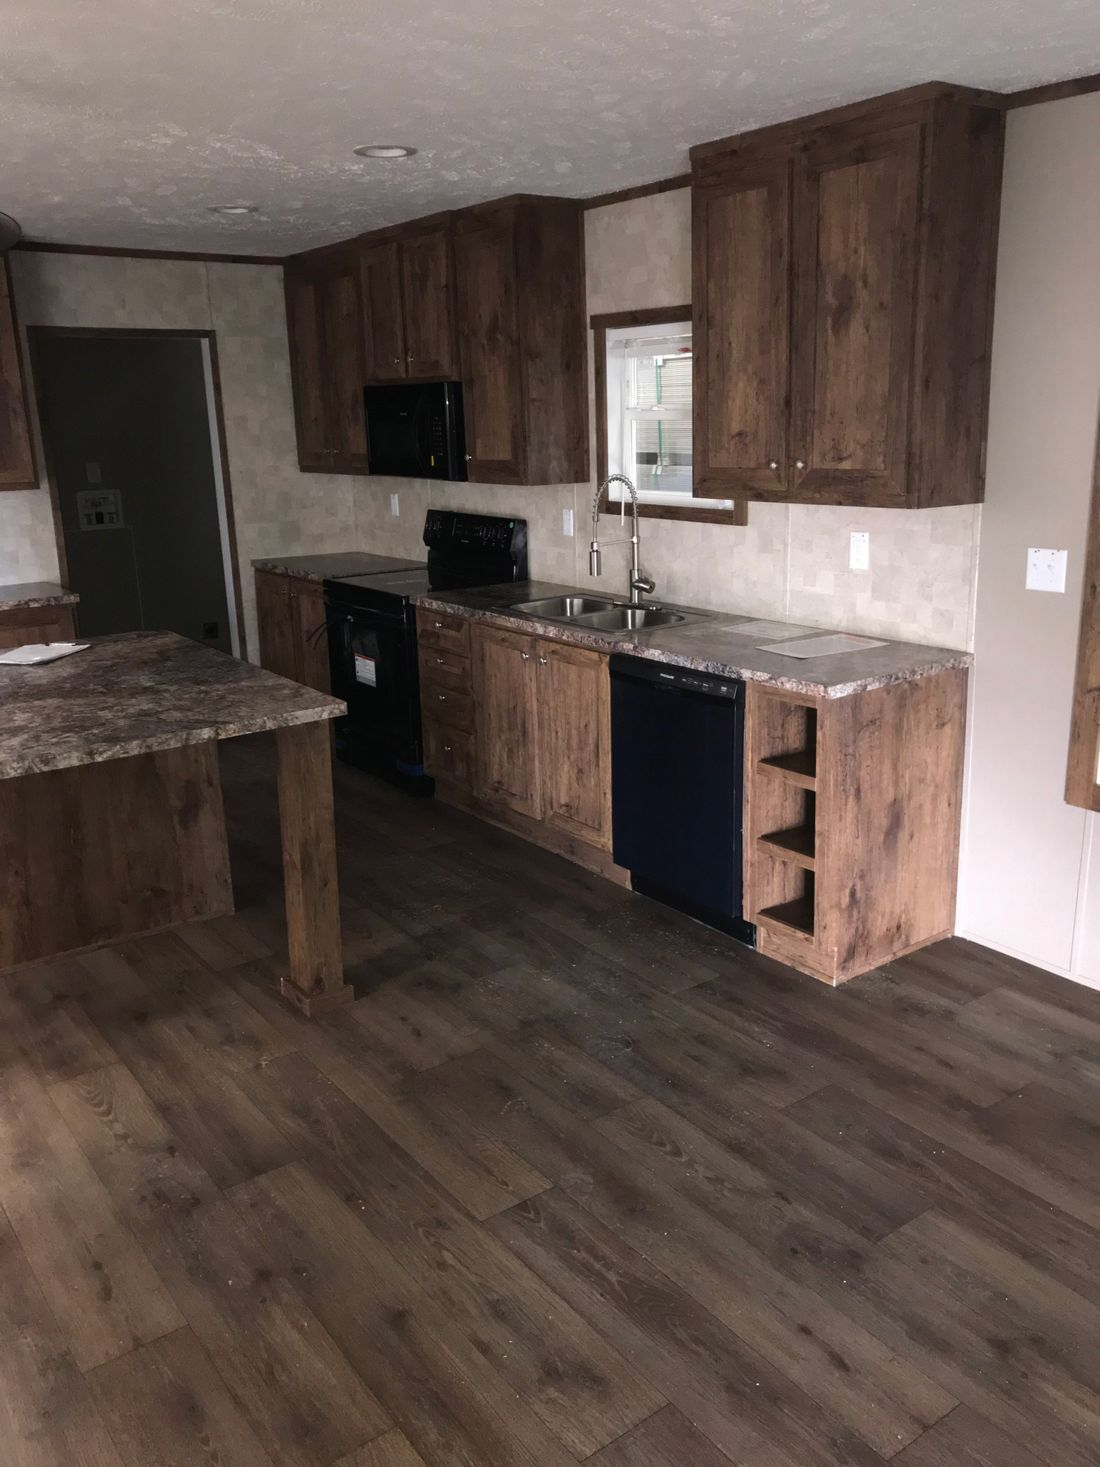 The ULTRA PRO 76 Kitchen. This Manufactured Mobile Home features 4 bedrooms and 2 baths.